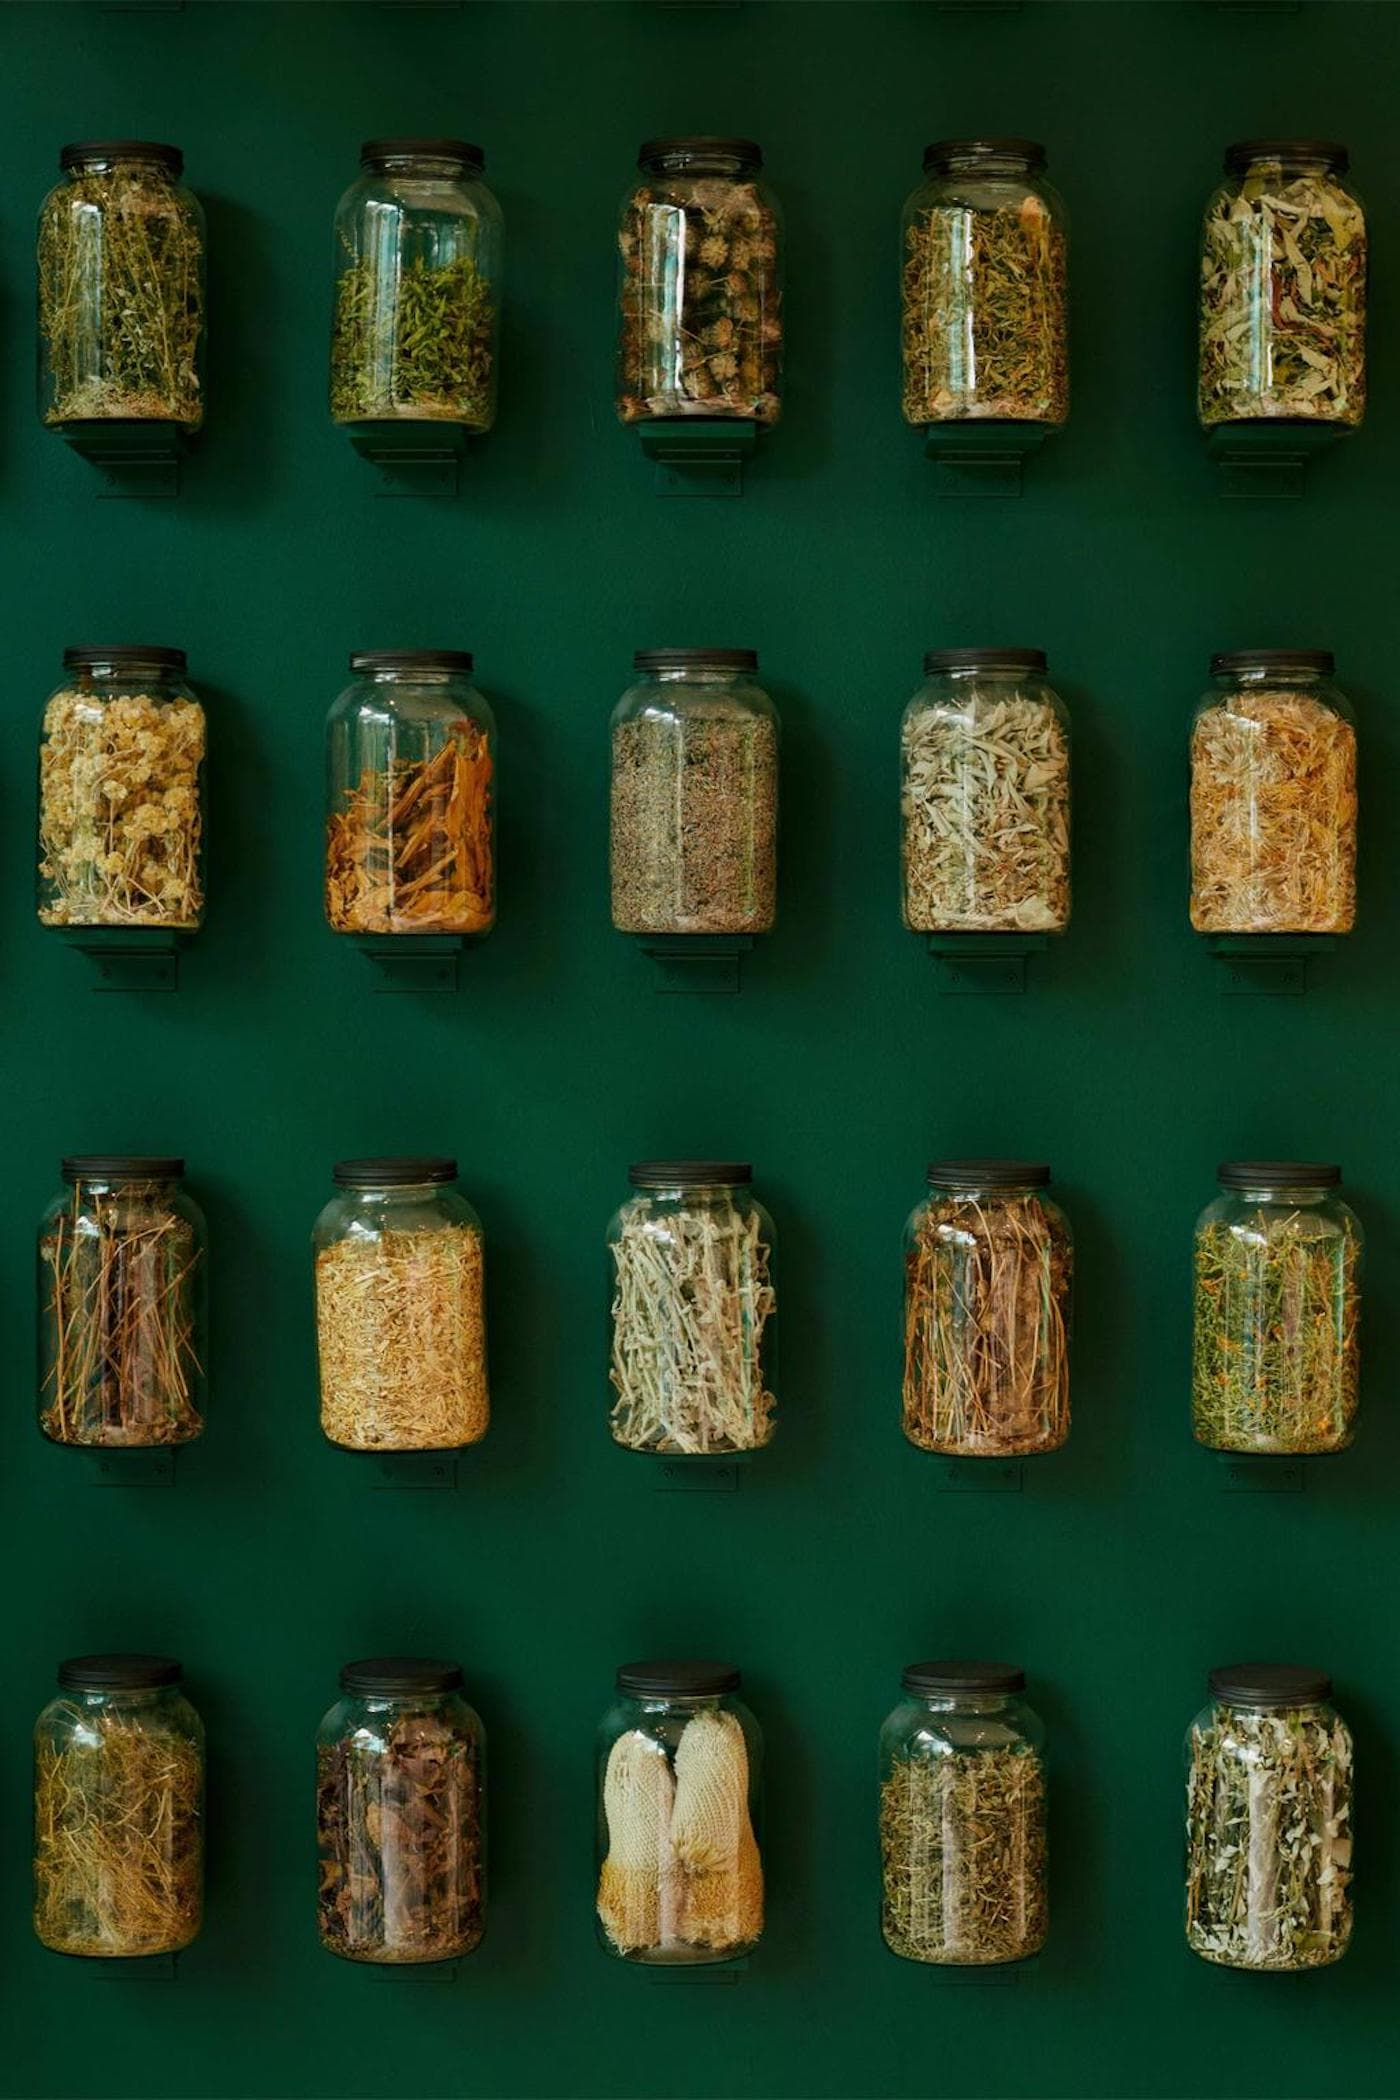 Close up view of ingredients in glass bottles on green wall